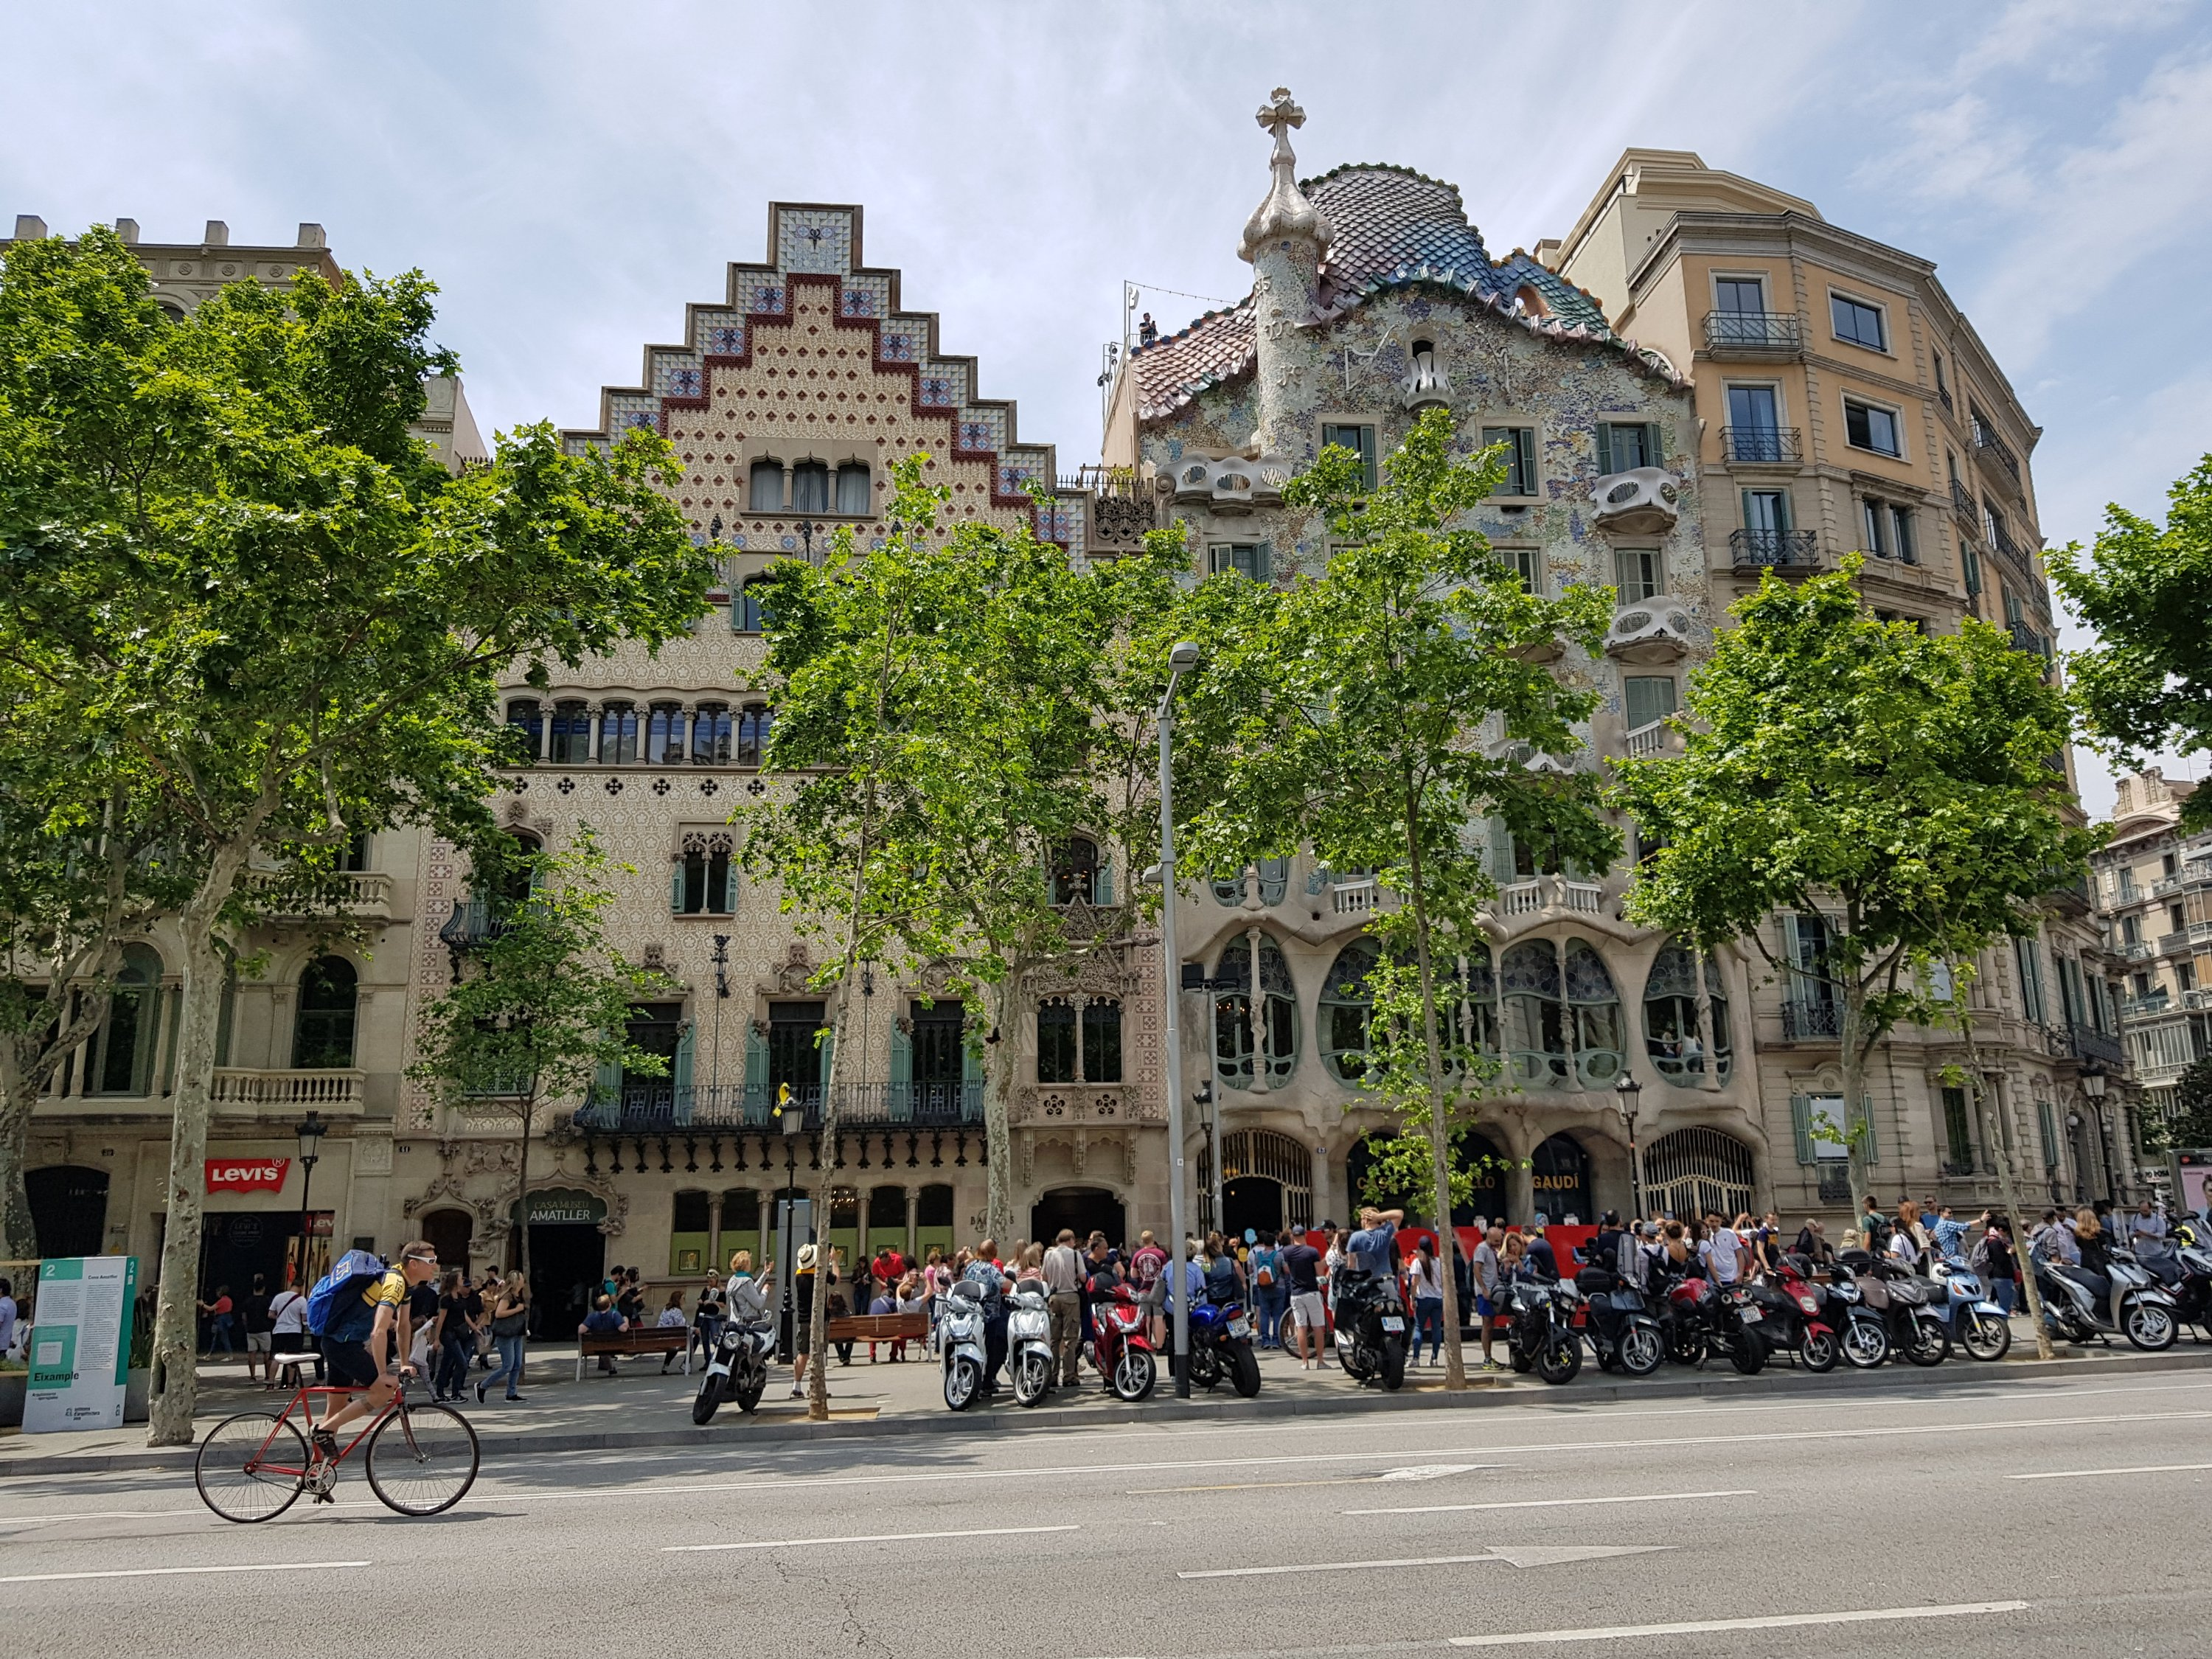 Gaudis Casa Battló in Barcelona